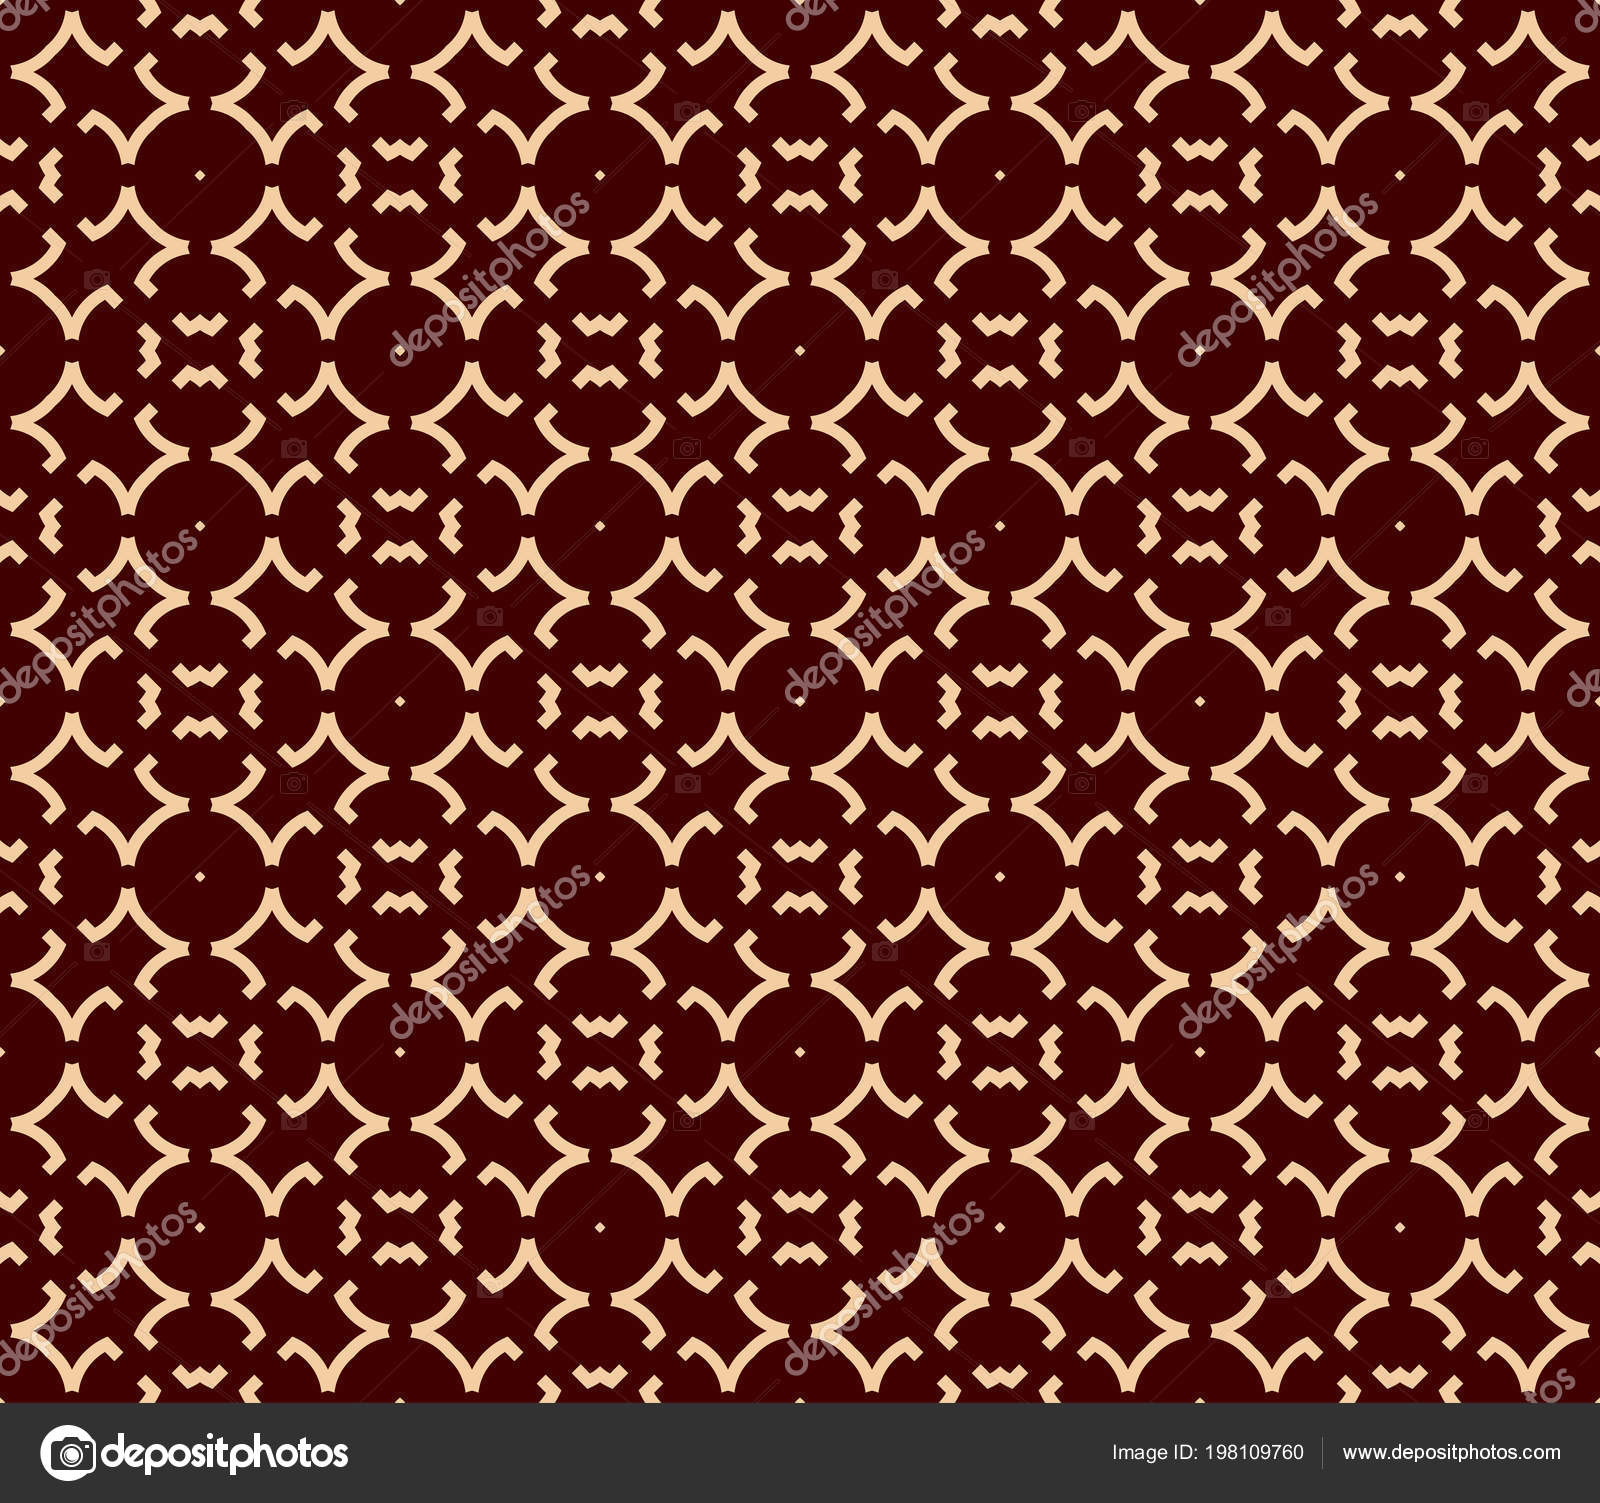 Seamless Geometric Line Pattern Contemporary Graphic Design Endless Linear Texture